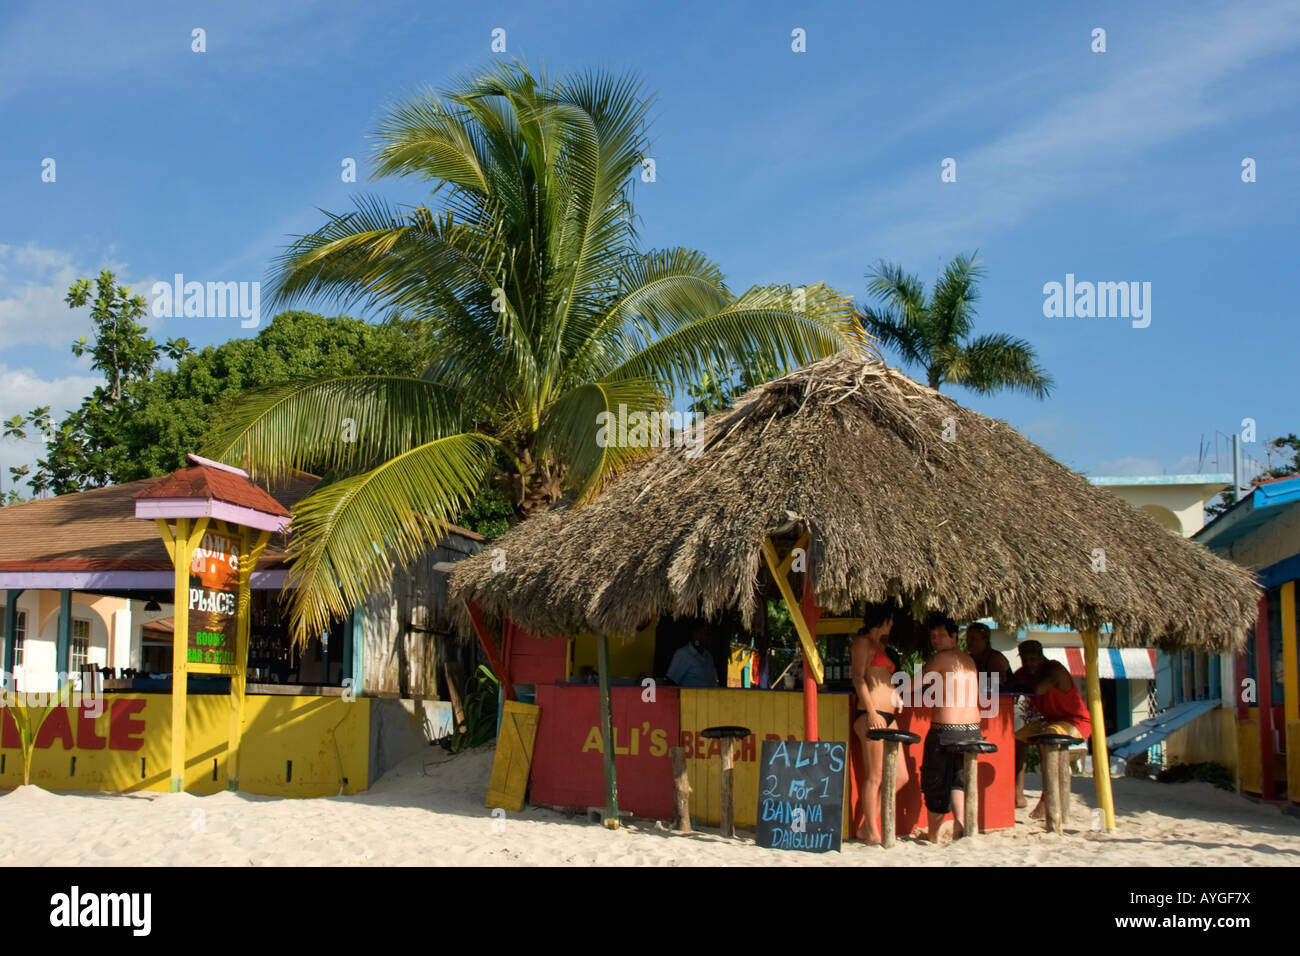 Jamaica Negril beach bar - Stock Image